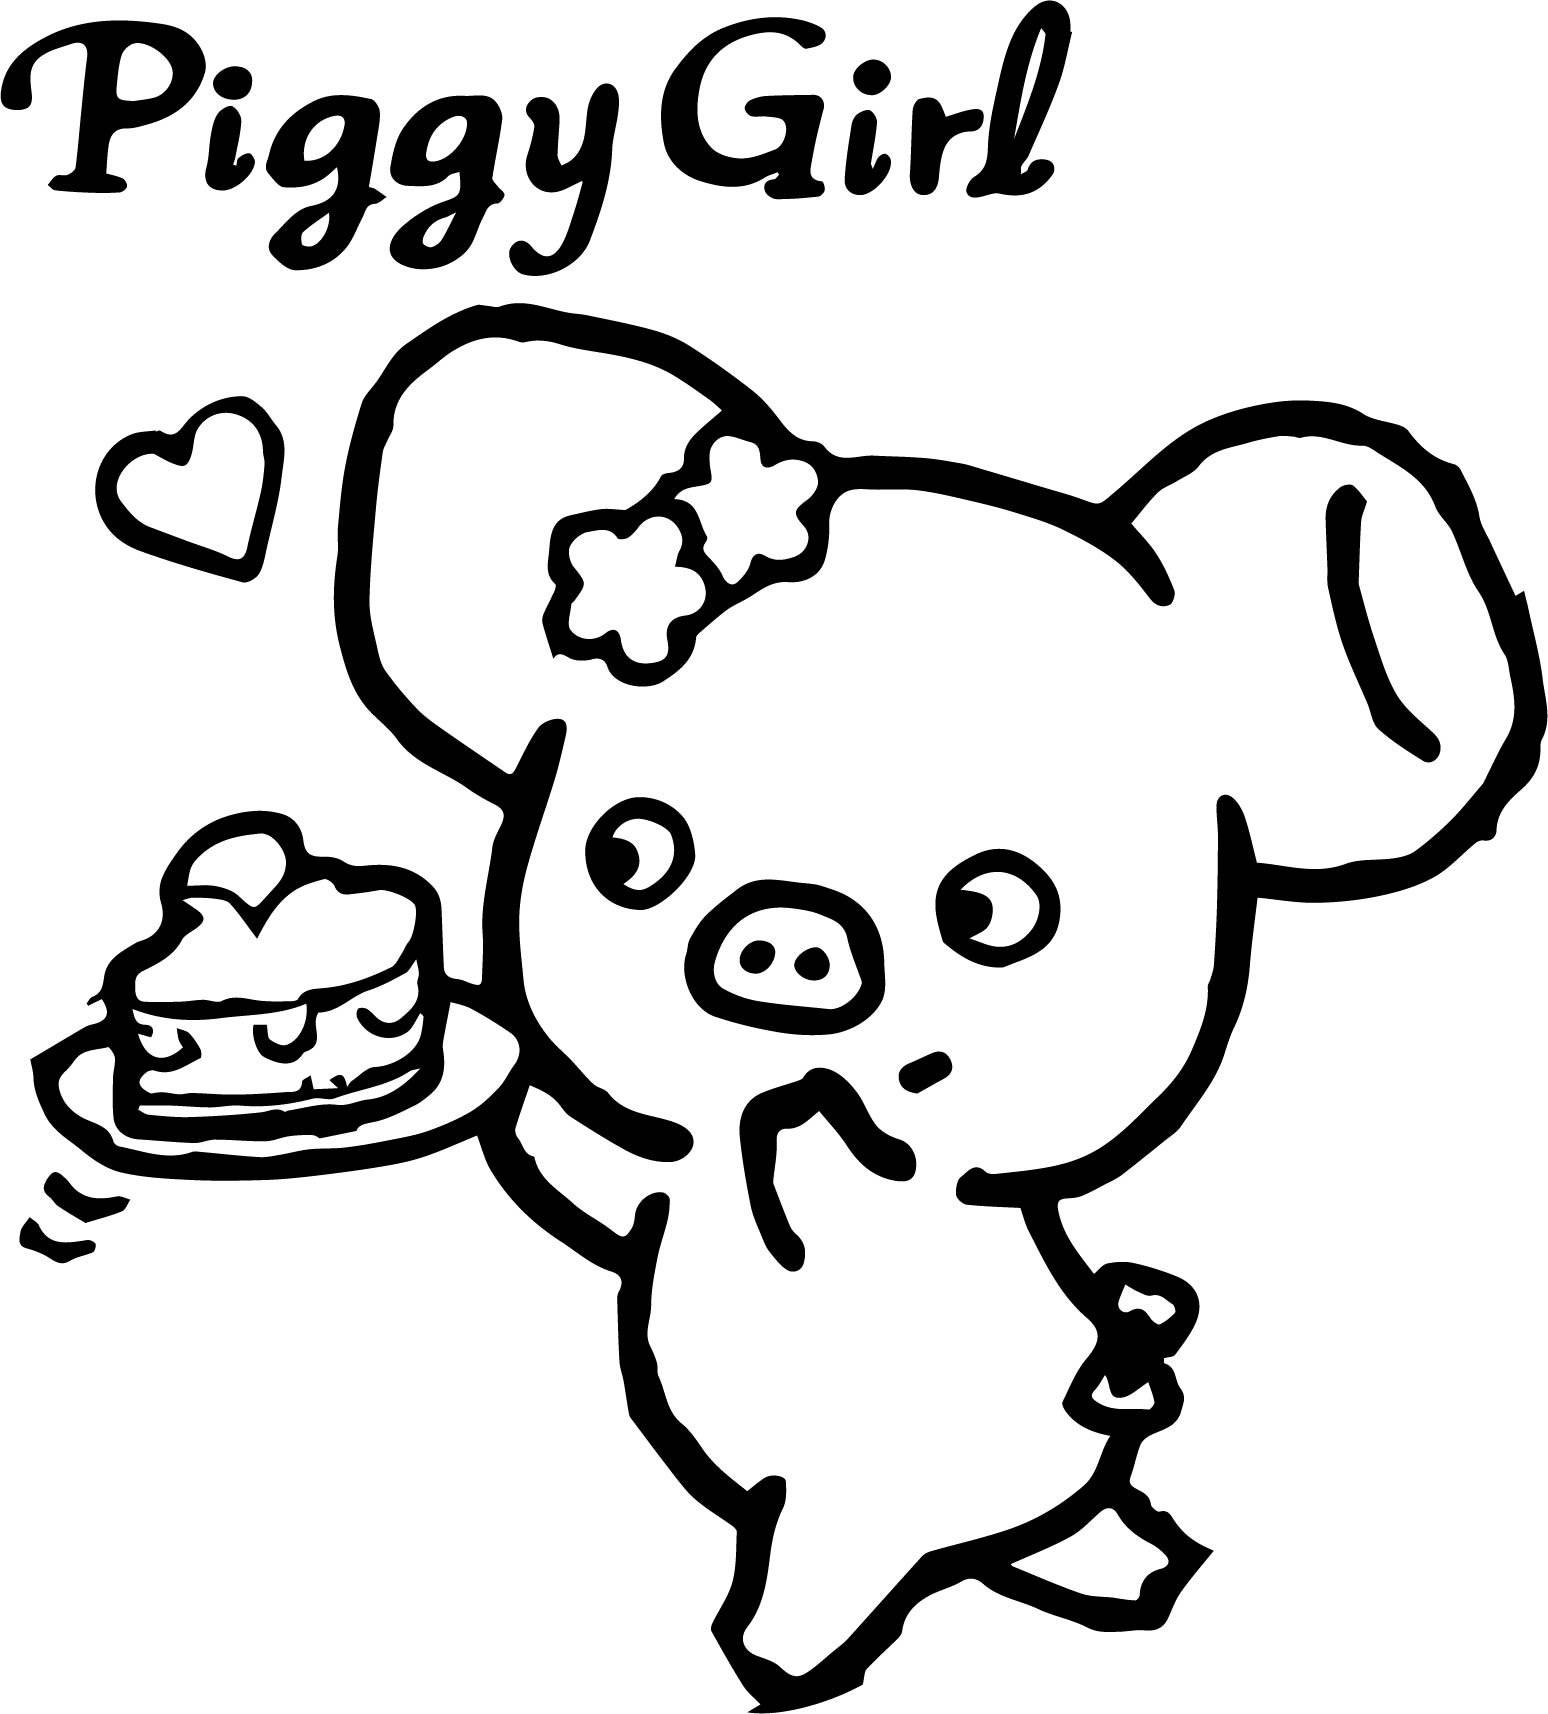 1548x1714 Piggy Girl Pig Cake Strawberry Towel From Japan Coloring Page